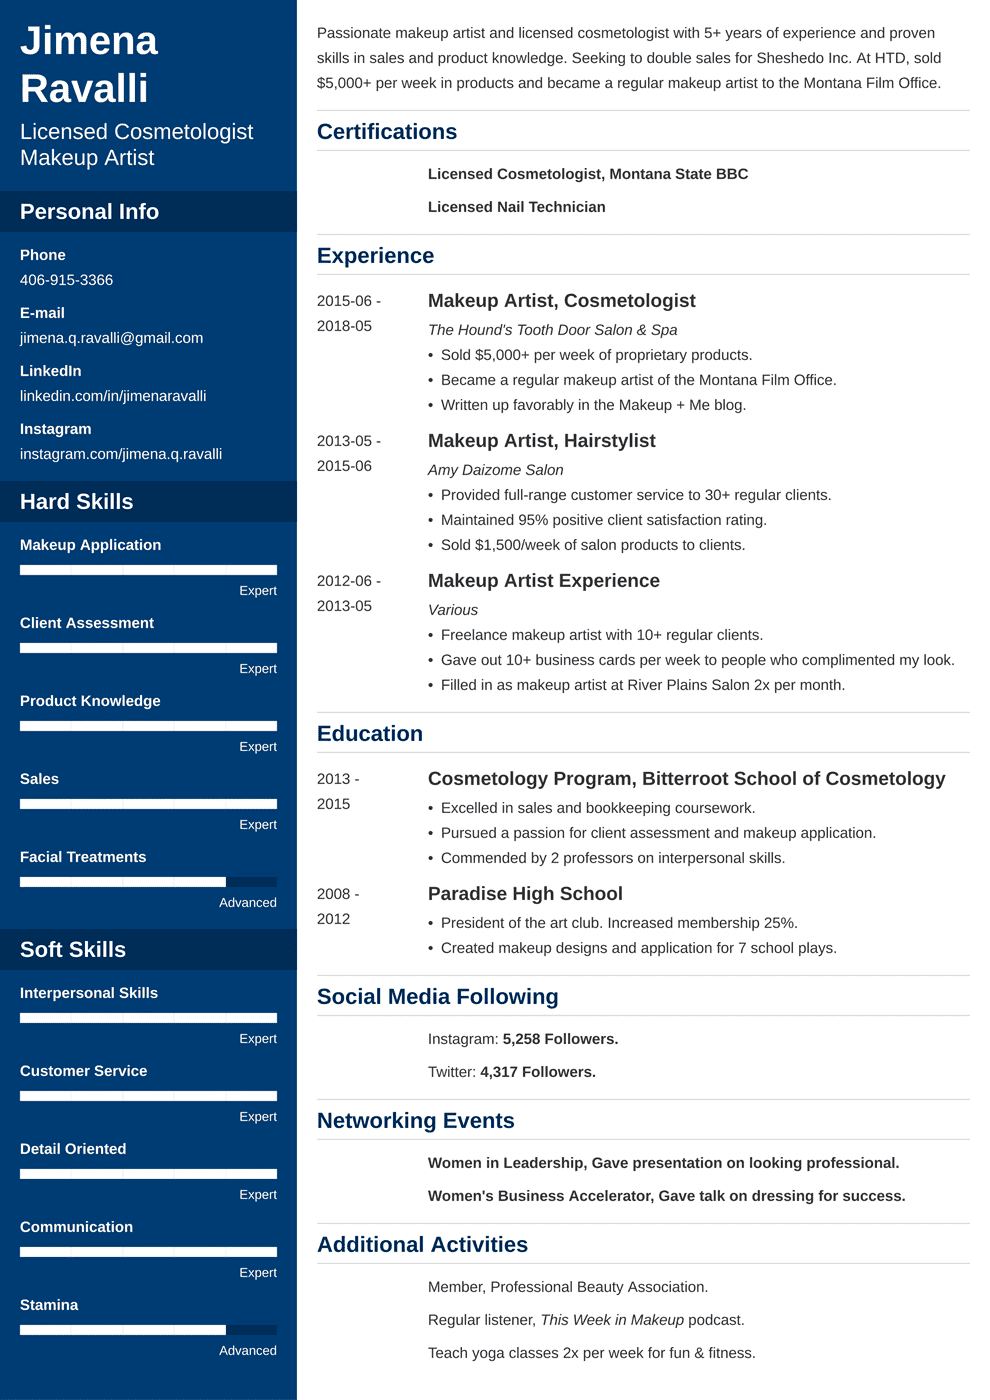 Makeup Artist Resume Sample for 2020 Guide & Examples